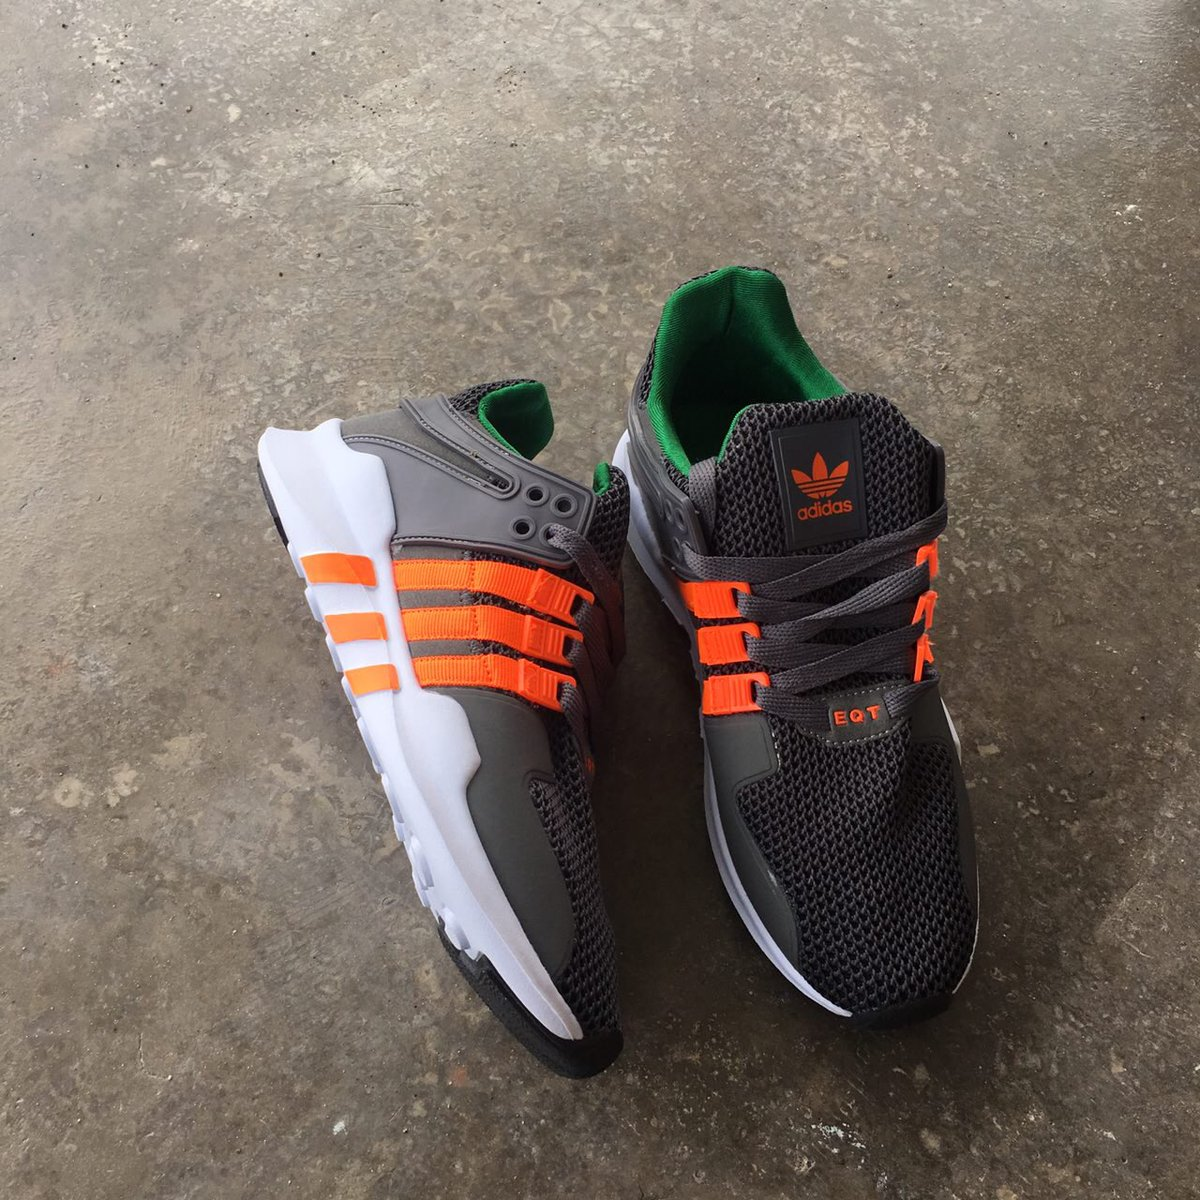 23da96f58016bb Adidas EQT Grey Orange Size  - 41-45 Euro Harga Offer  - RM 90 Only SM (inc  postage) RM 95 Only SS (inc postage) WhatsApp   0111-621  8182pic.twitter.com  ...